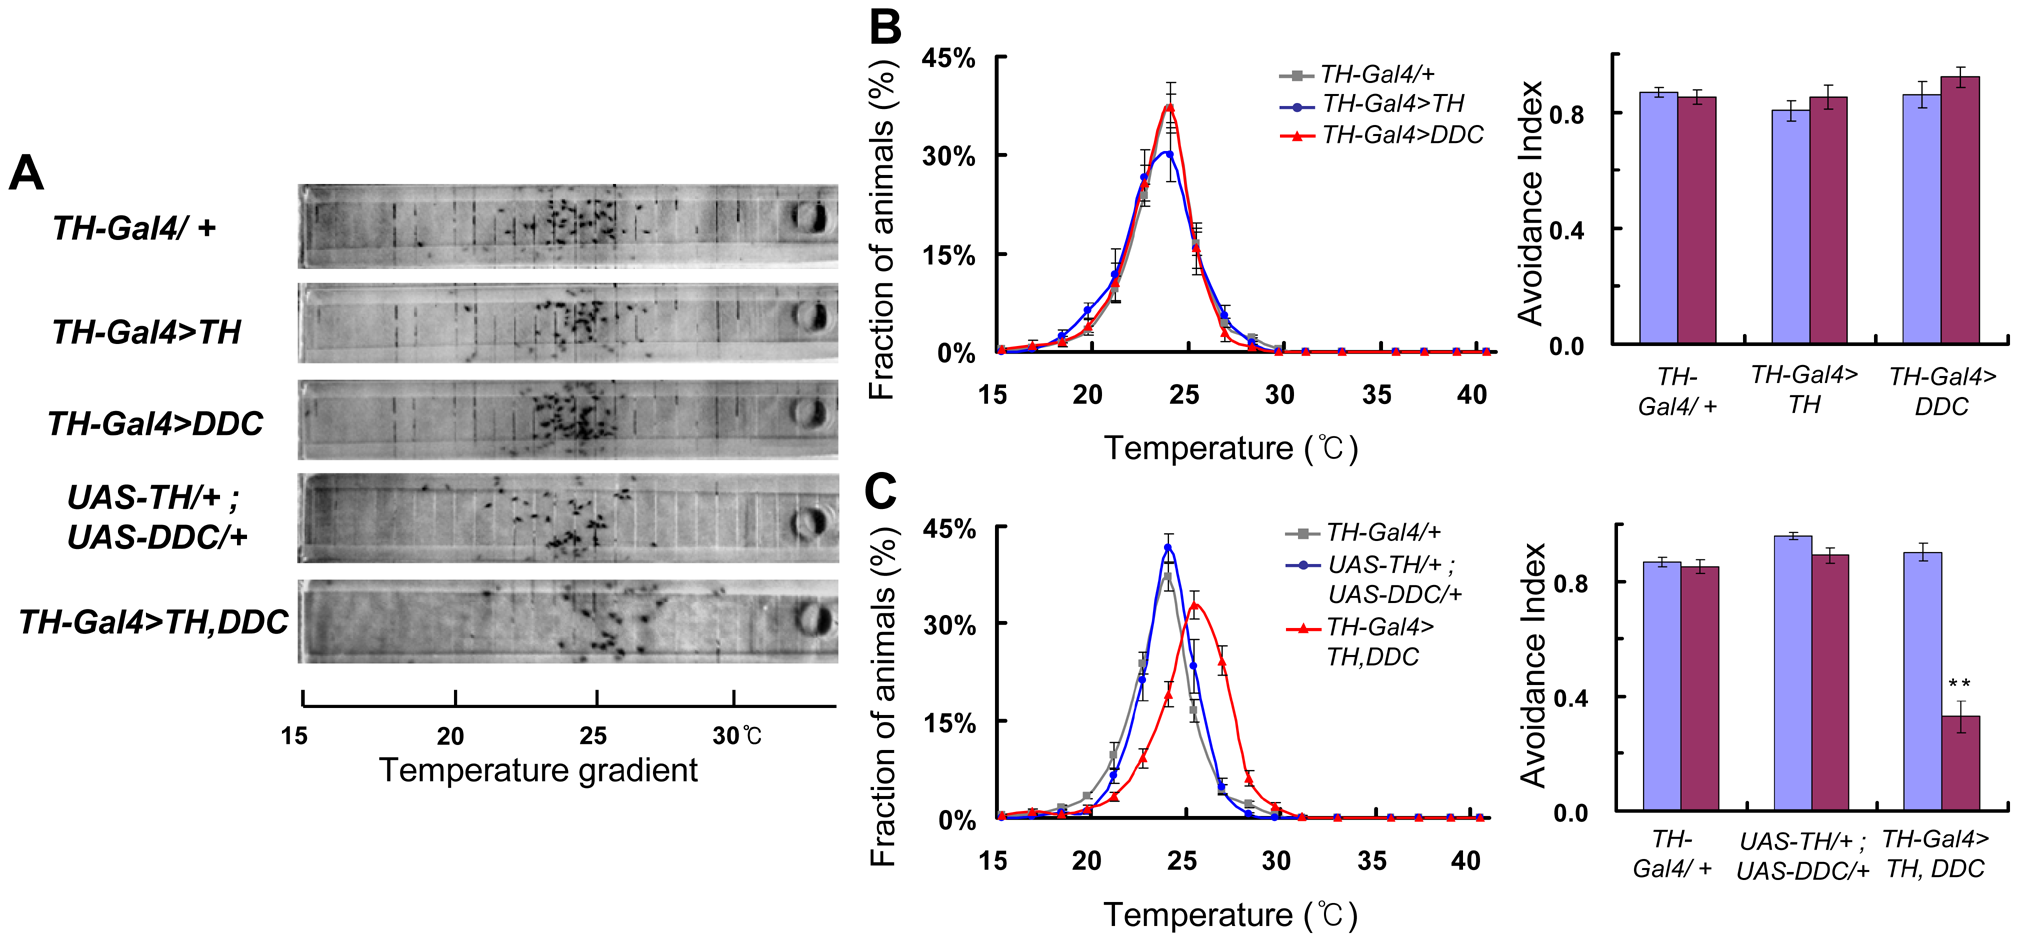 Dopamine biosynthesis is critical for flies to avoid cold temperature.